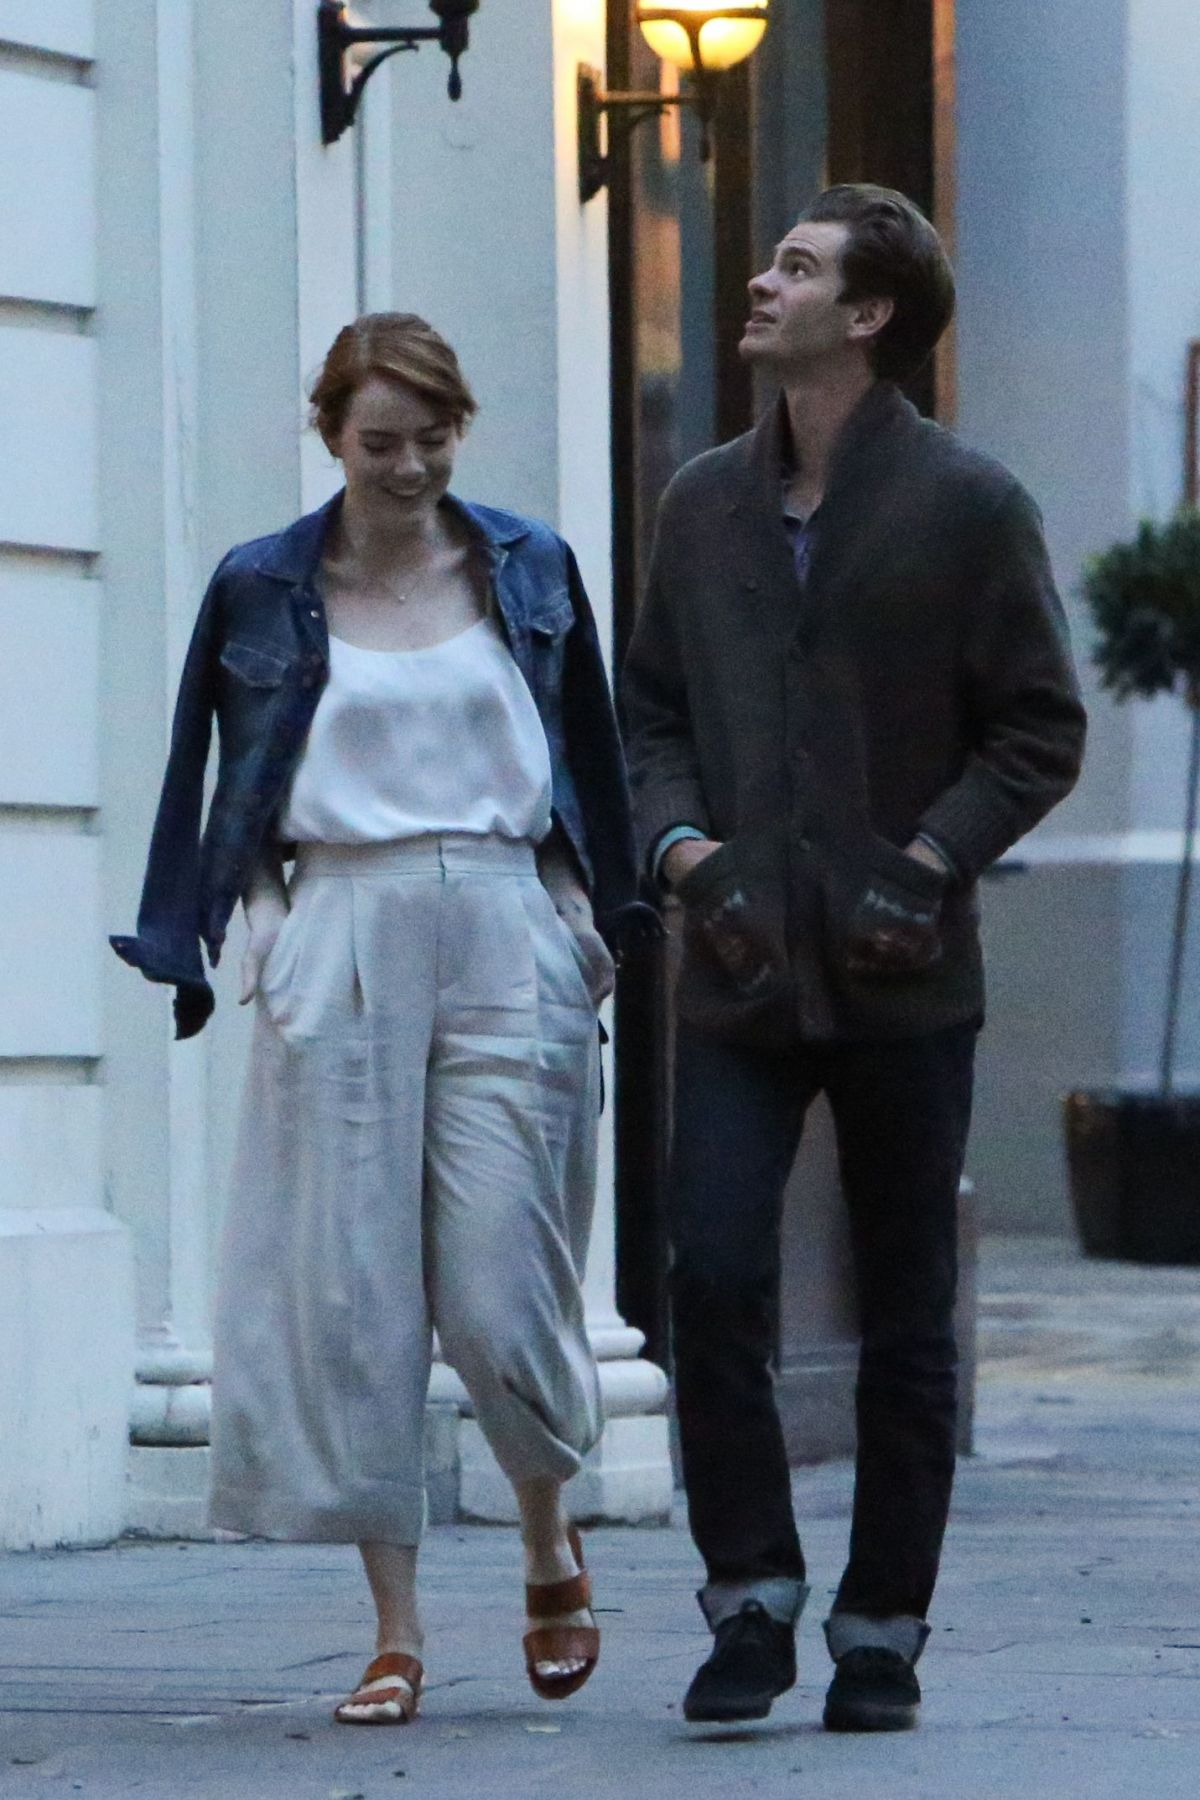 EMMA STONE Out and About in London 08/21/2016